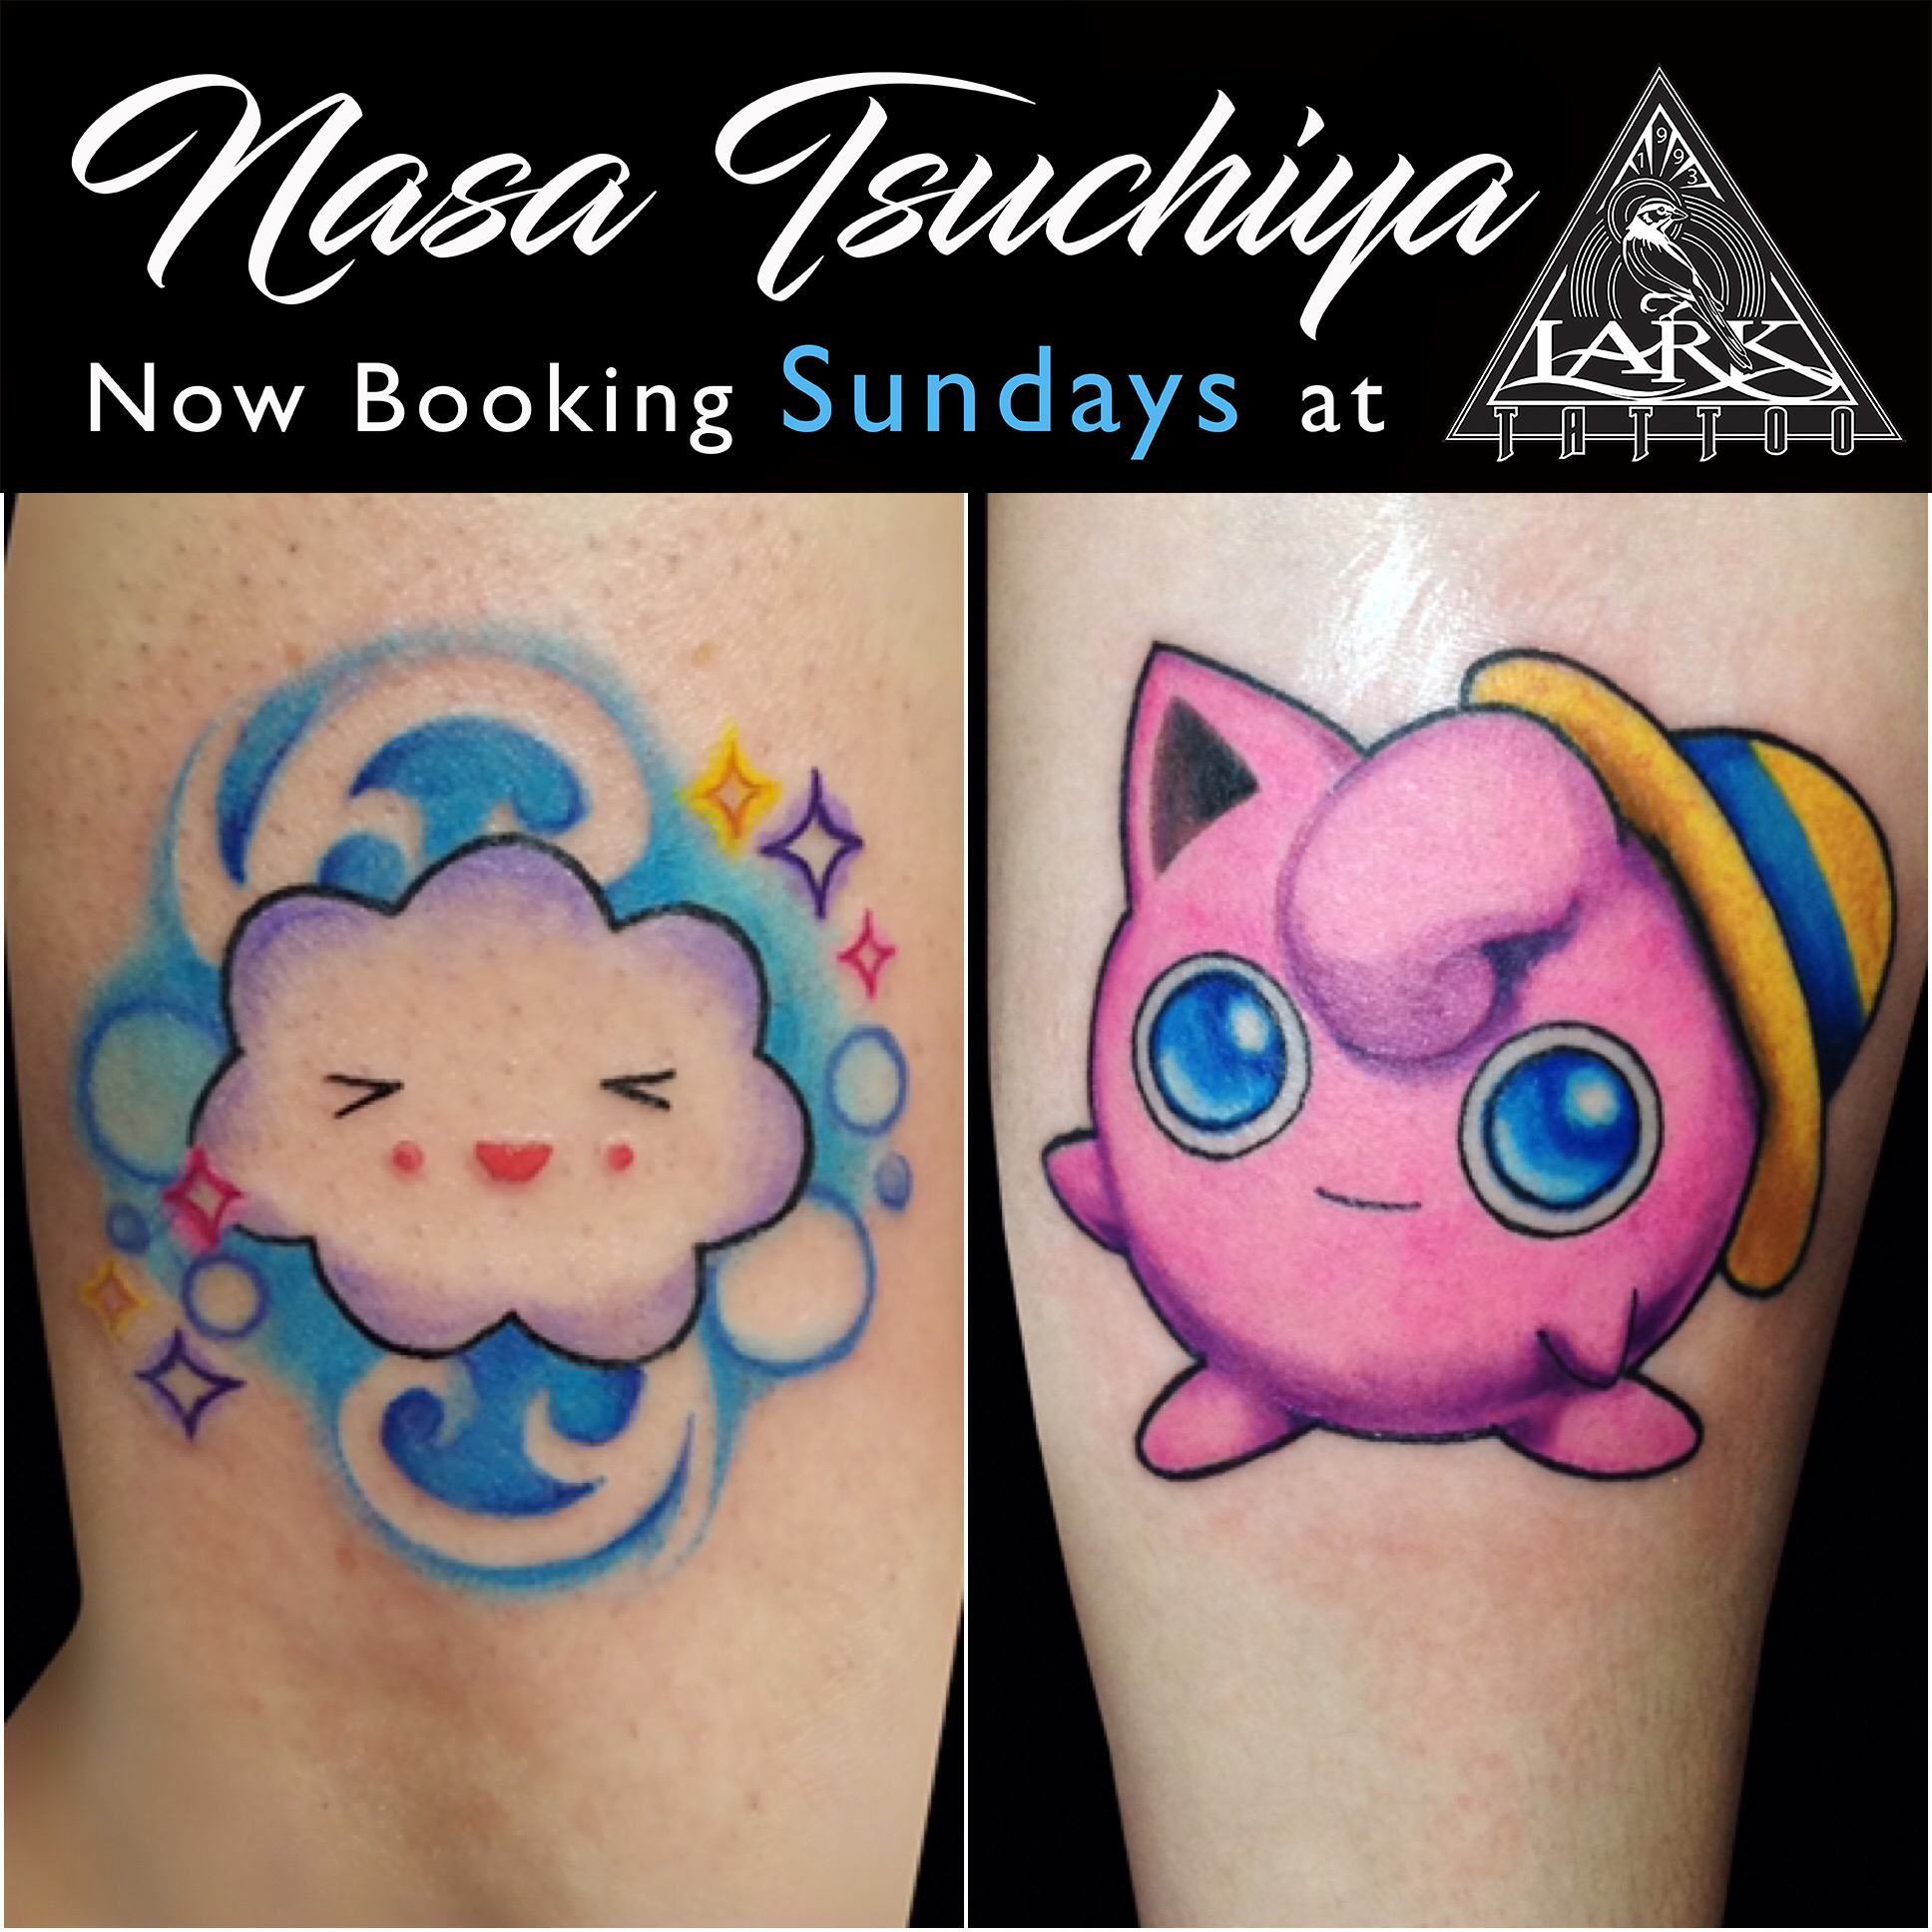 #Jigglypuff #JigglypuffTattoo #Pokemon #PokemonTattoo #TattooThemAll #CatchThemAll #ColorTattoo #CuteTattoo #Cartoon #CartoonTattoo #Cloud #CloudTattoo #FemaleArtist #FemaleTattooer #LadyTattooer #LarkTattoo #tattoos #tat #tats #tatts #tatted #tattedup #tattoist #tattooed #inked #inkedup #ink #tattoooftheday #amazingink #bodyart #larktattoowestbury